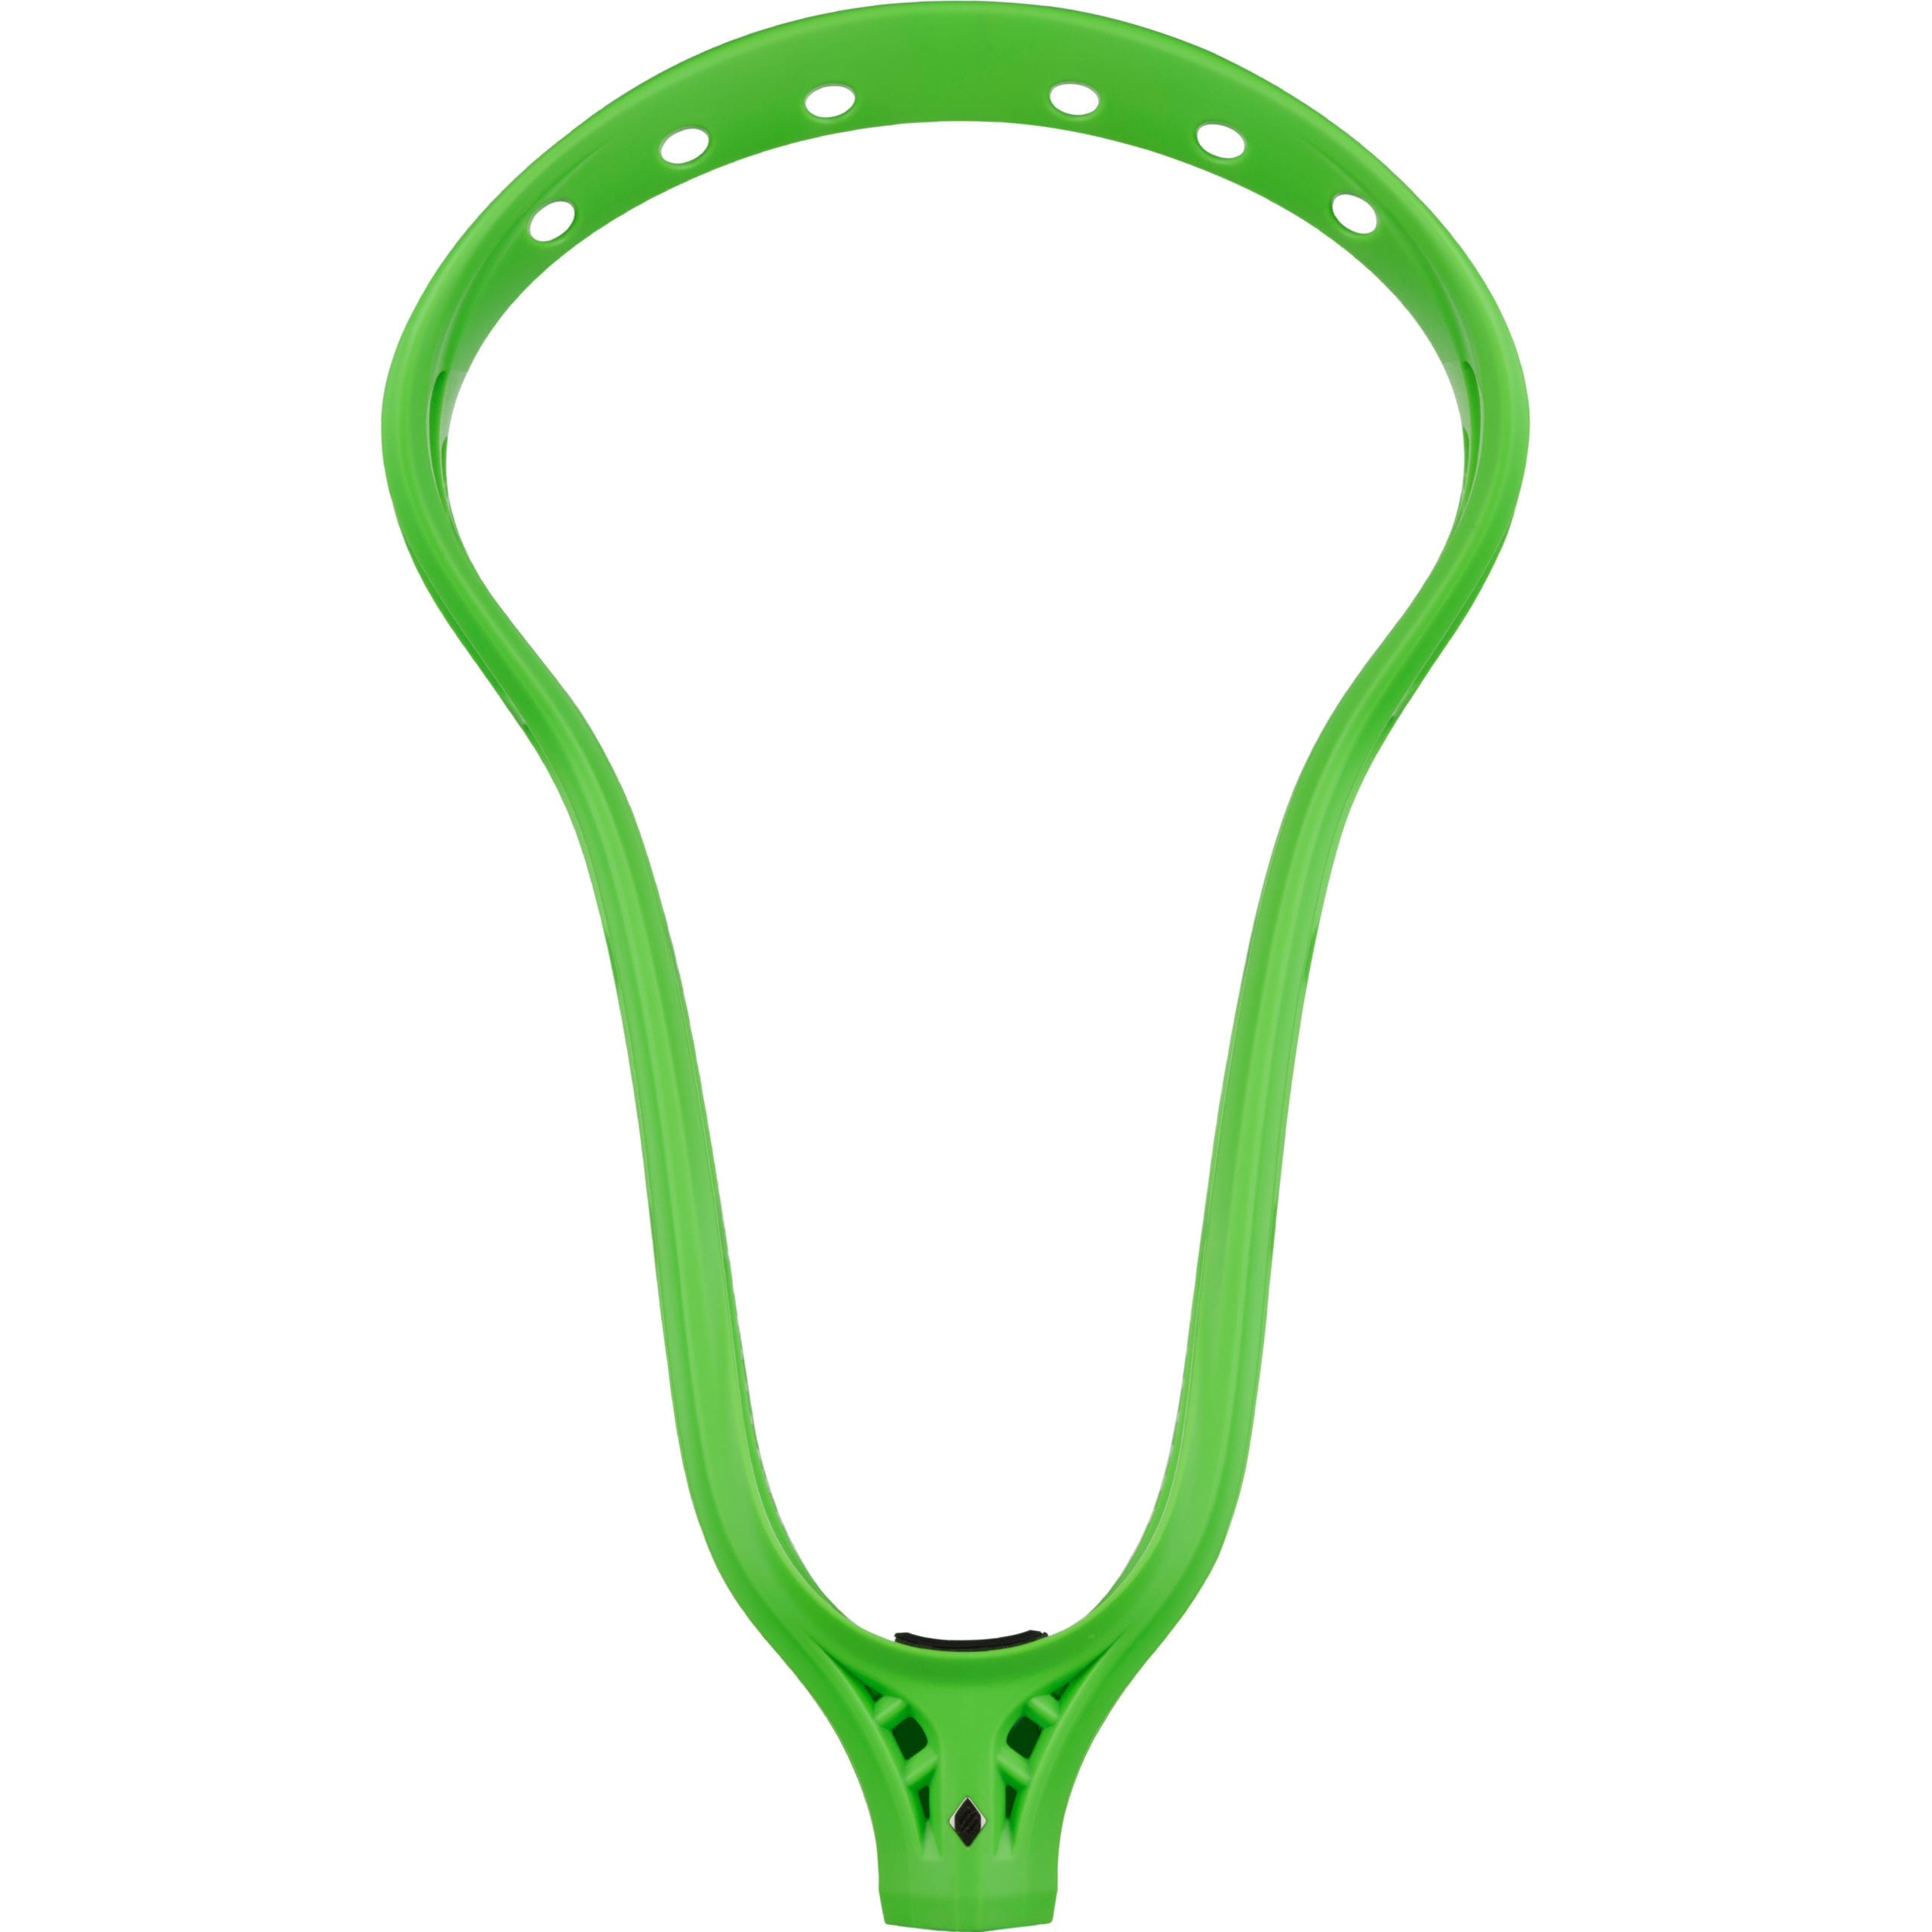 StringKing-Womens-Mark-2-Midfield-Headstrong-Unstrung-Gallery-Image-Face-scaled-1.jpg